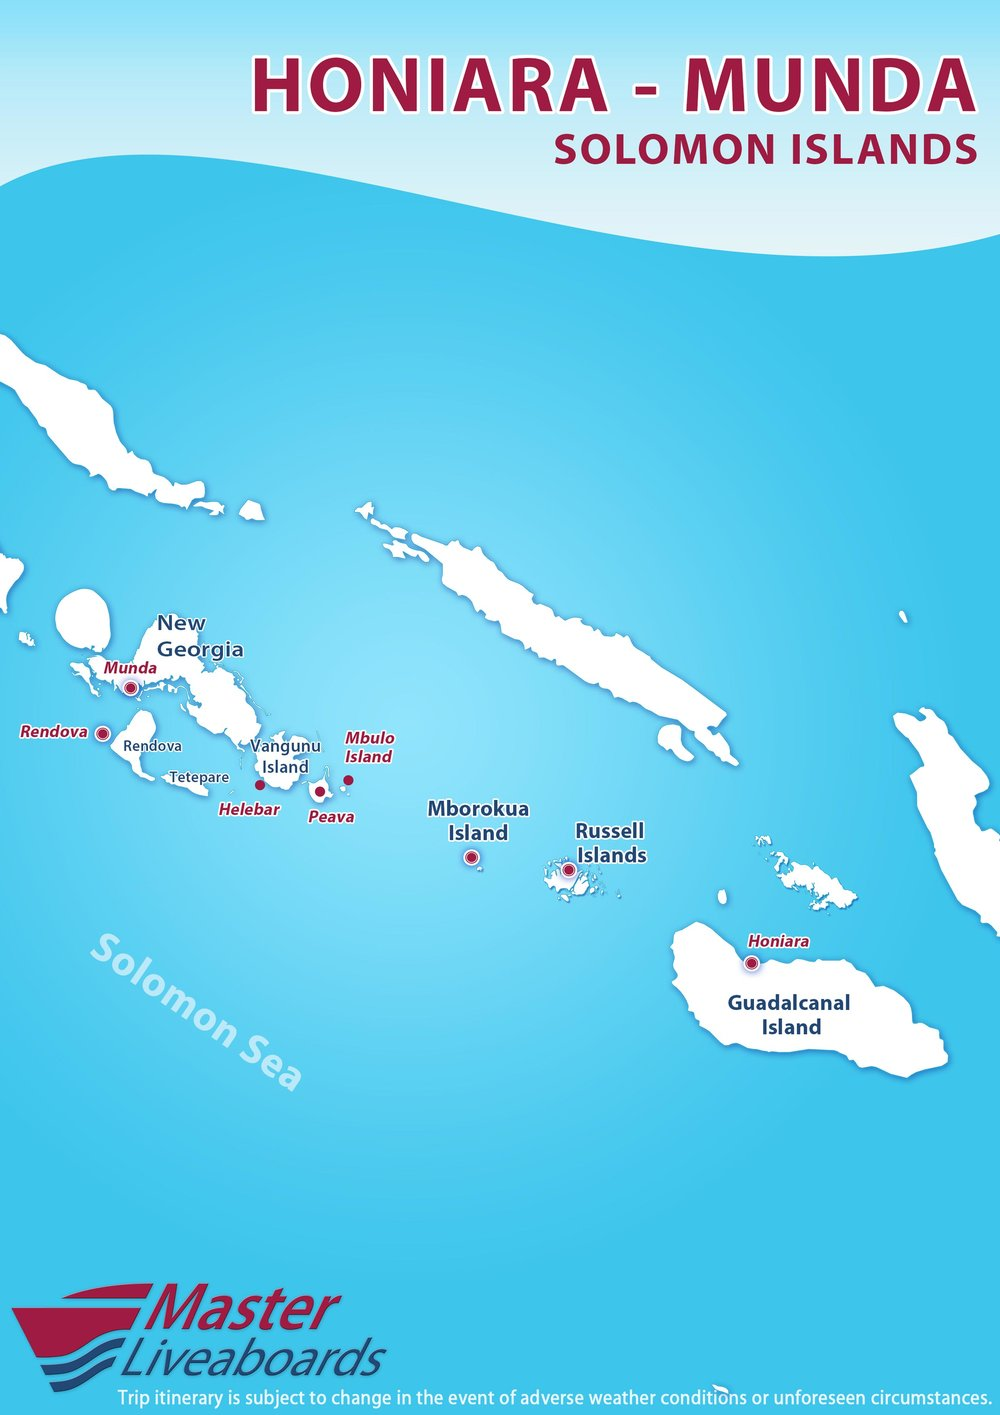 honiara_to_munda_solomon_islands_lr1.jpg